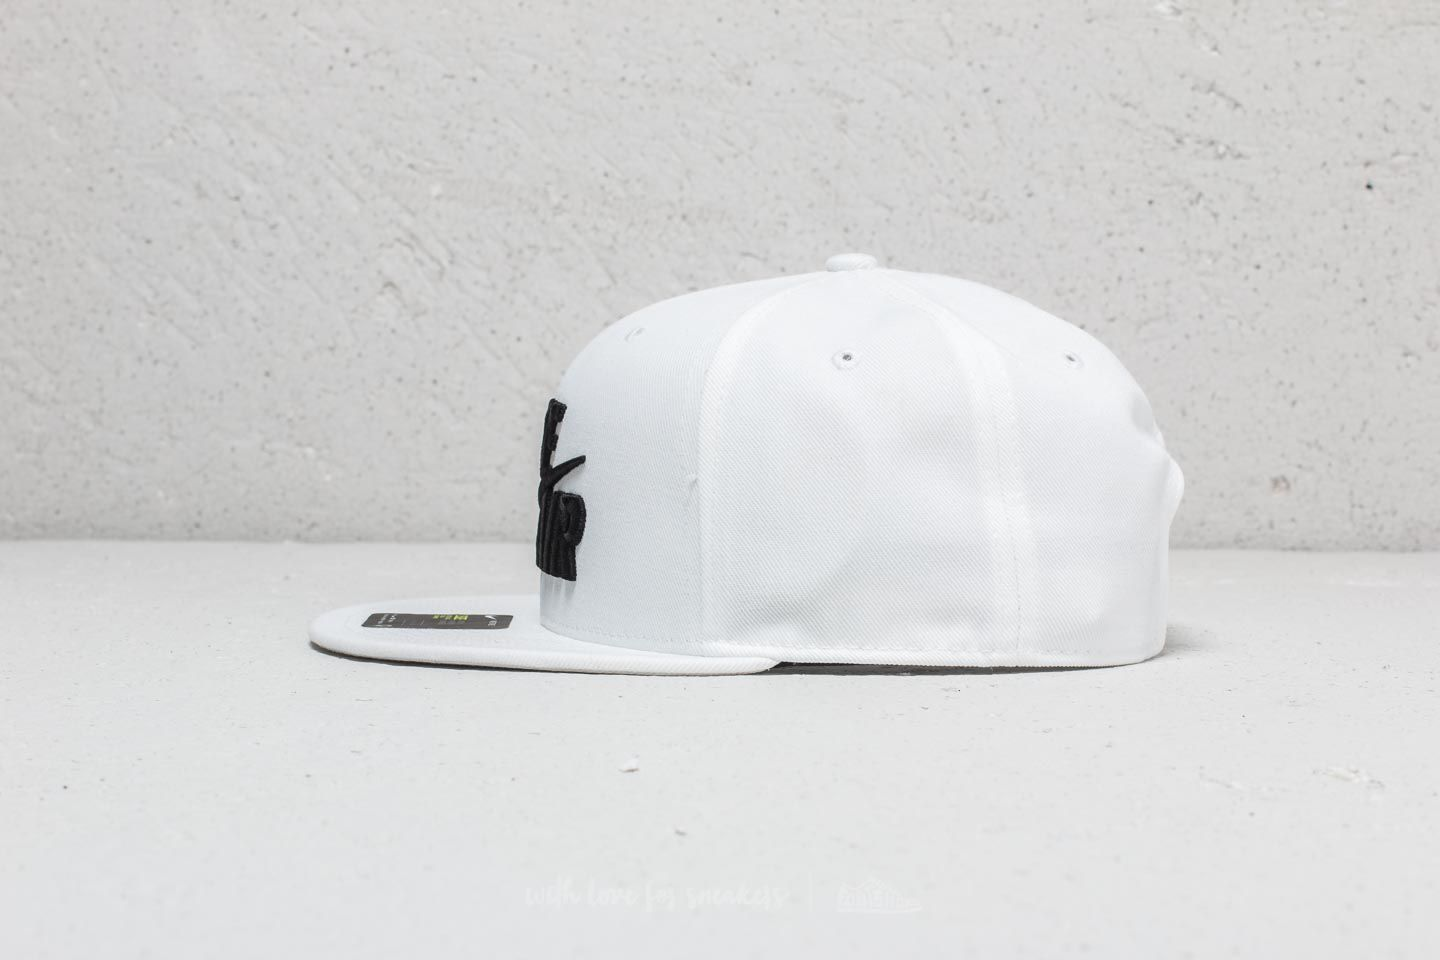 sale retailer 0a9fe 34022 Nike Air True Classic Cap White  Black at a great price  34 buy at Footshop